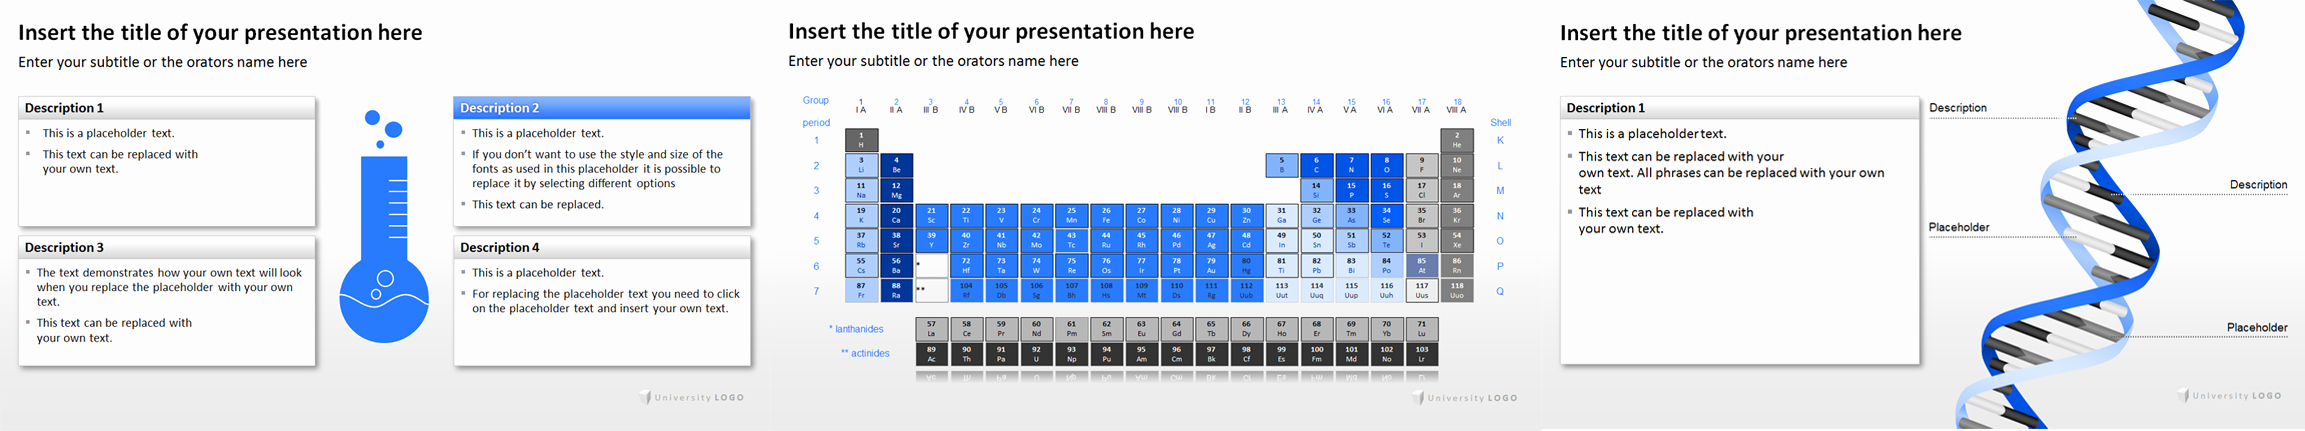 Science Powerpoint Templates Free Download Beautiful Download Free Powerpoint Templates for Science and